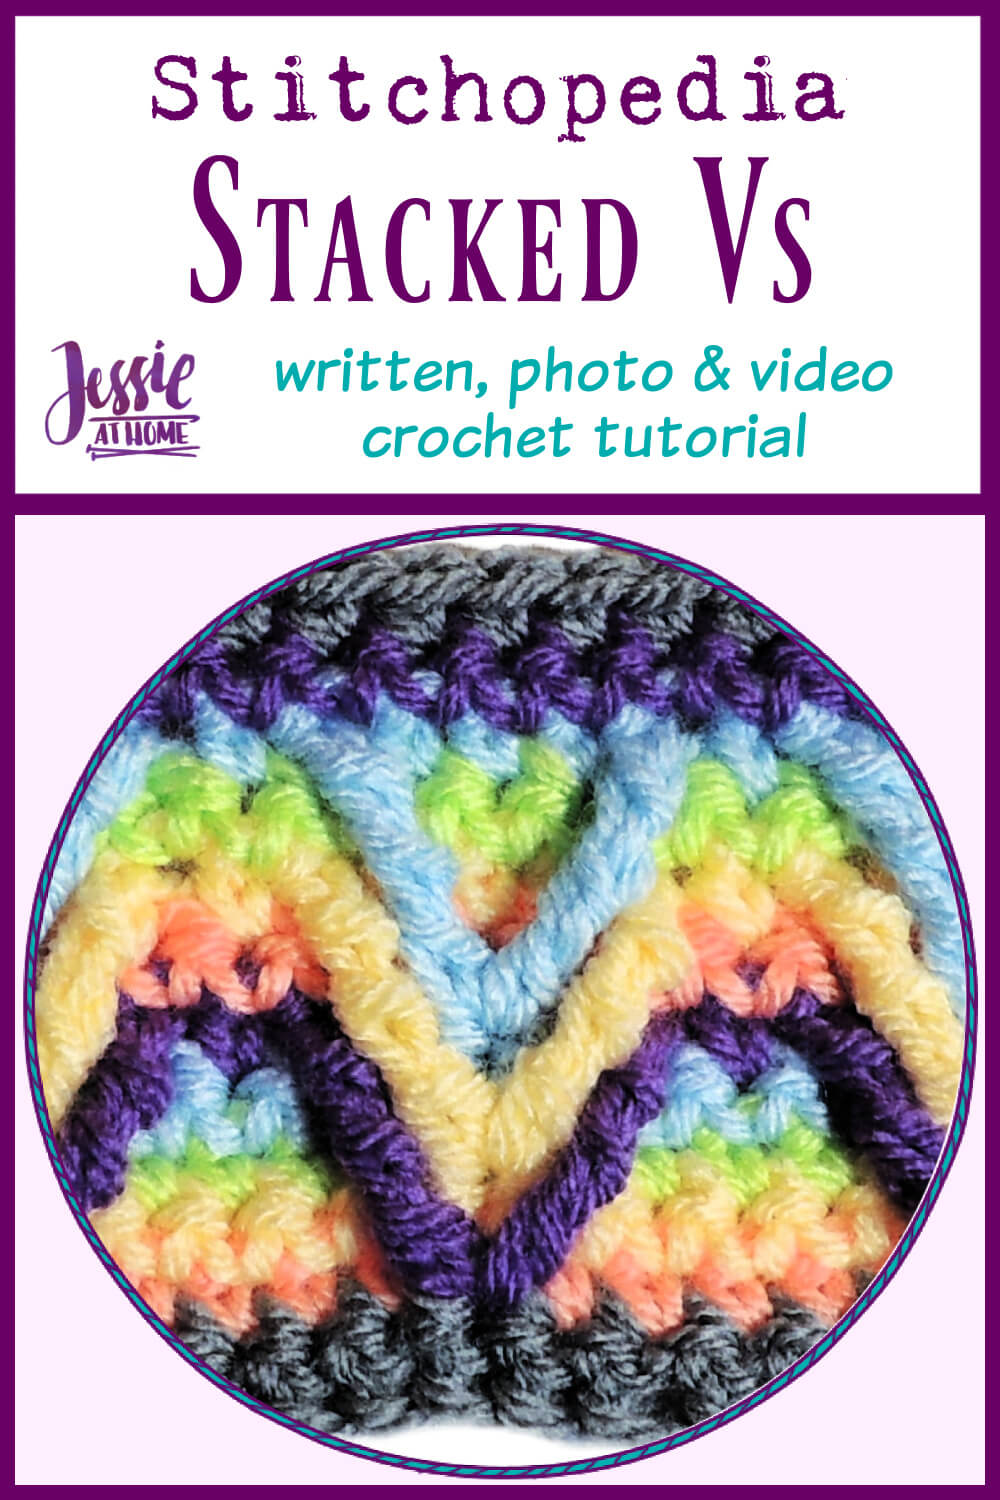 Stacked Vs Stitch – written, photo, and video crochet tutorial